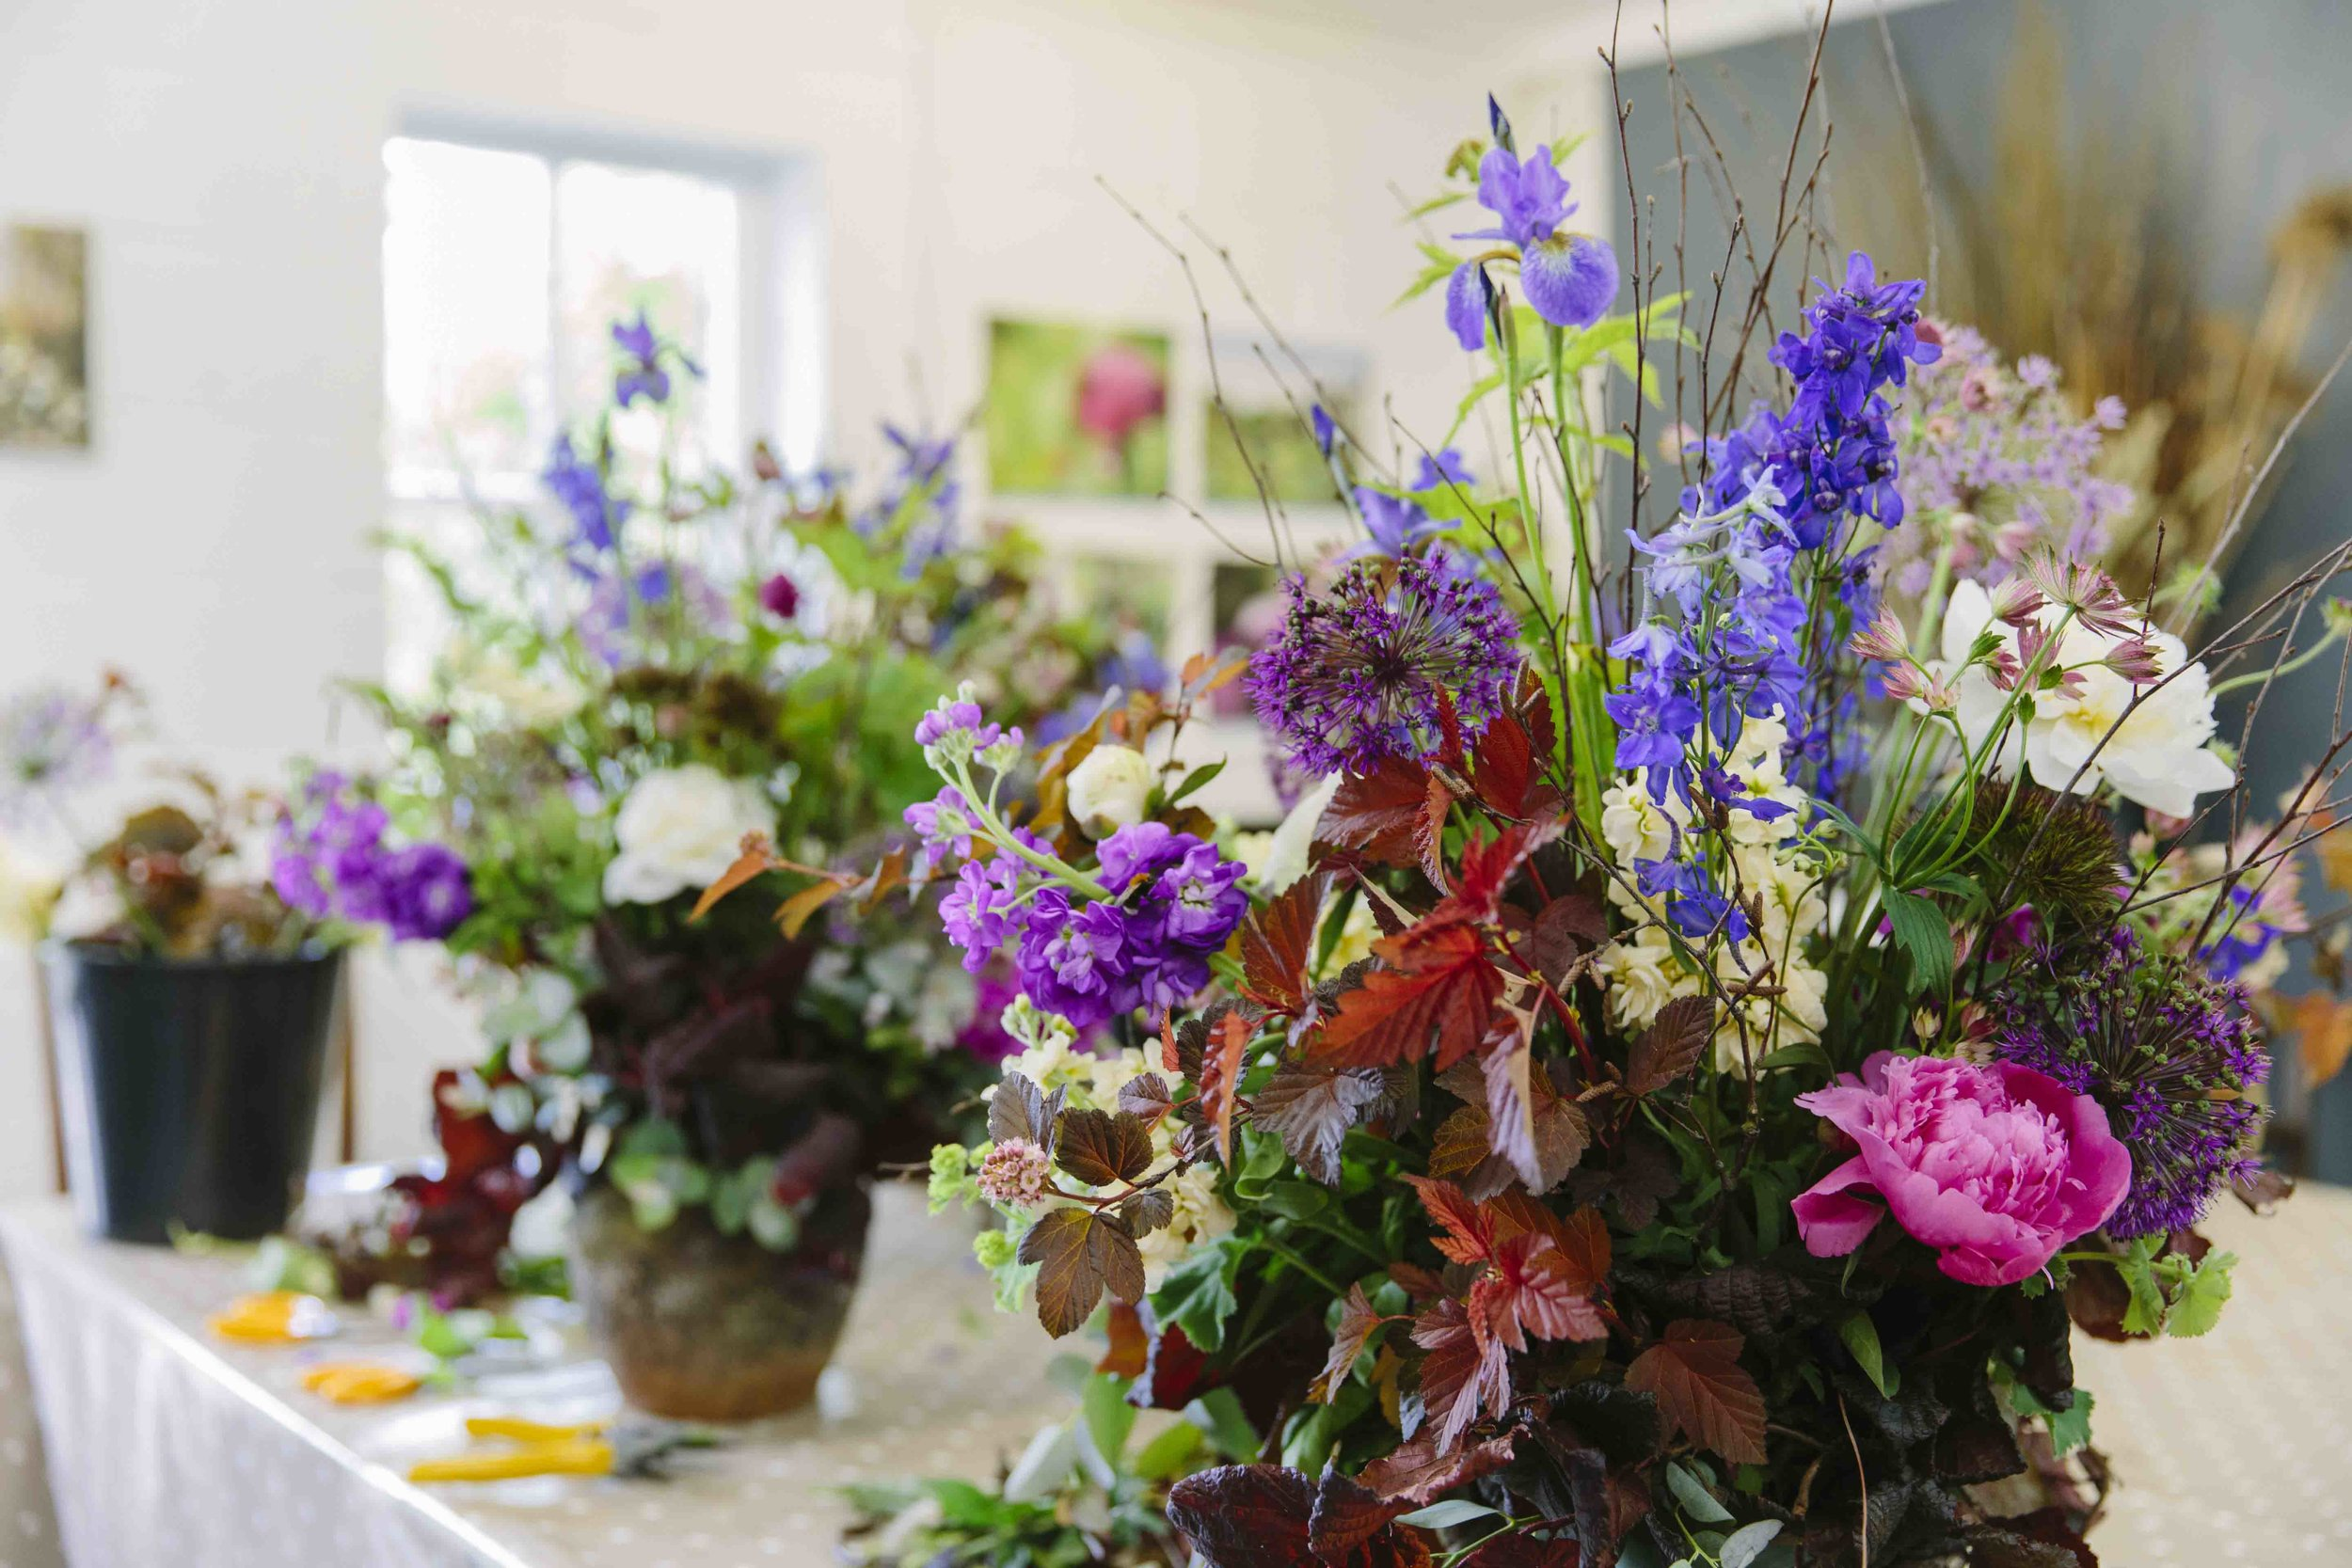 Yorkshire_Dales_Flower_Company_workshop_38.jpg